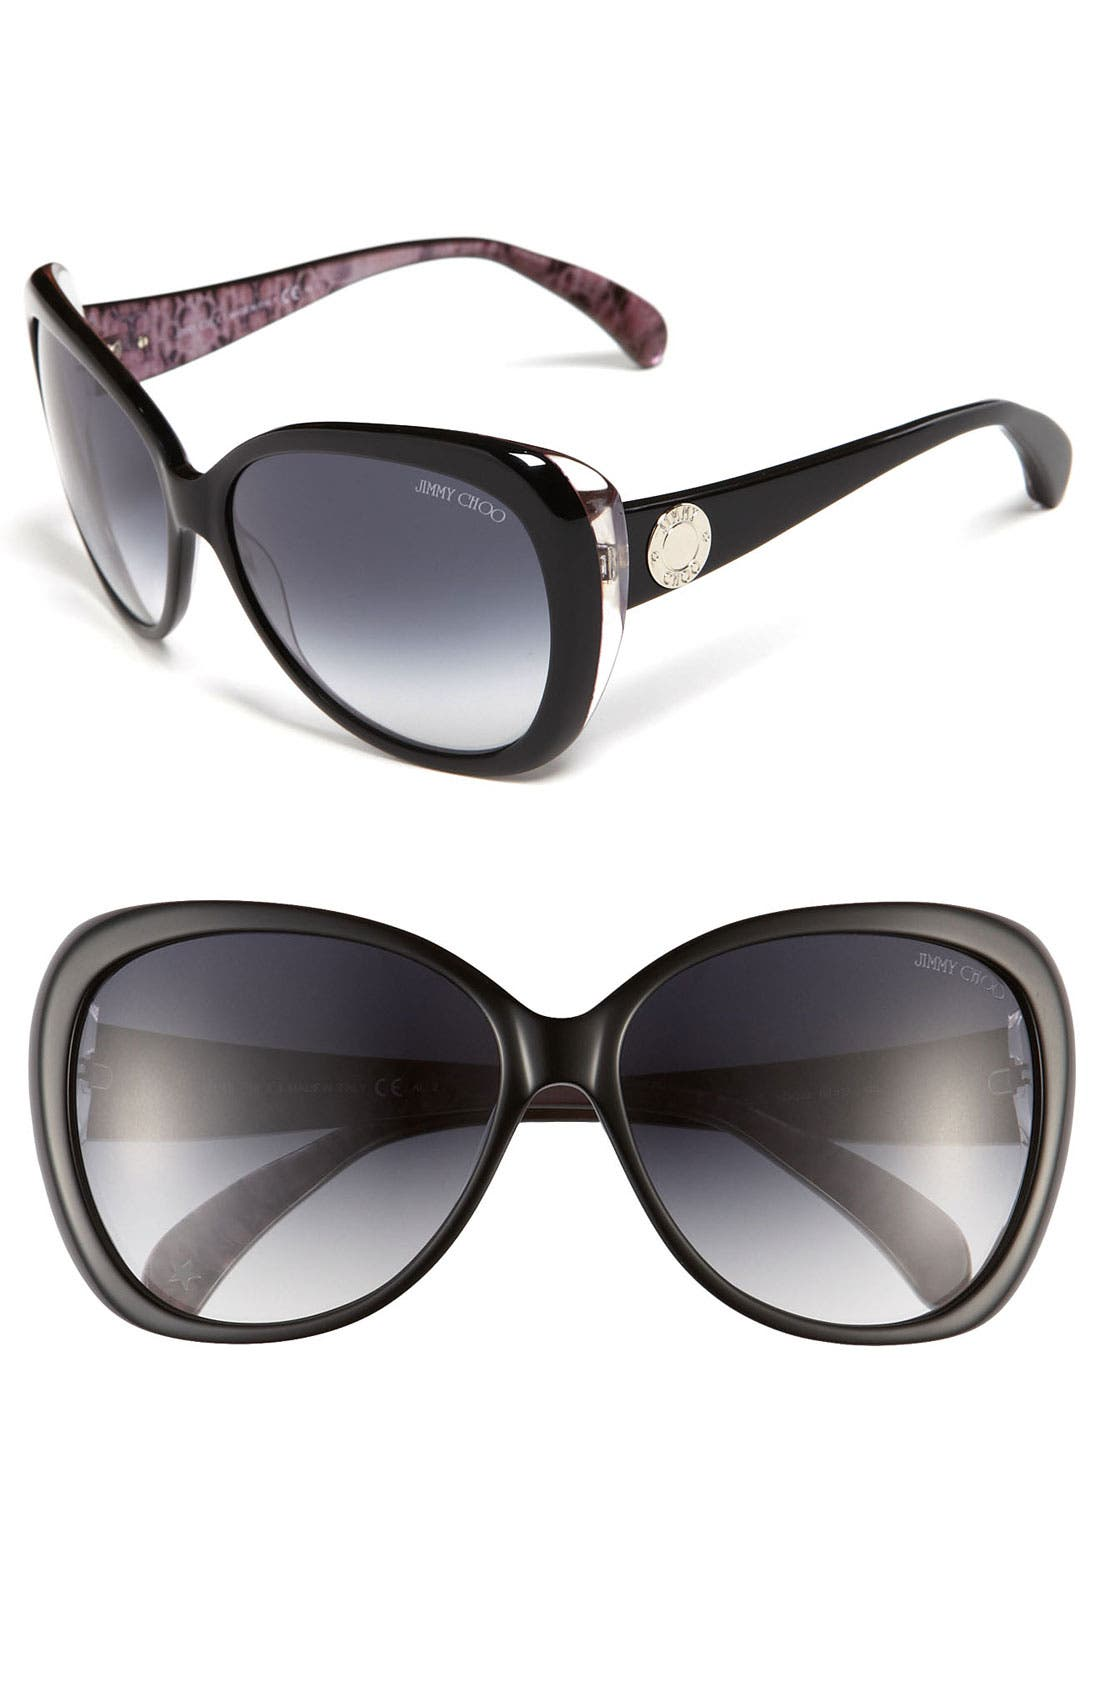 Main Image - Jimmy Choo 'Julie' Cat's Eye Sunglasses